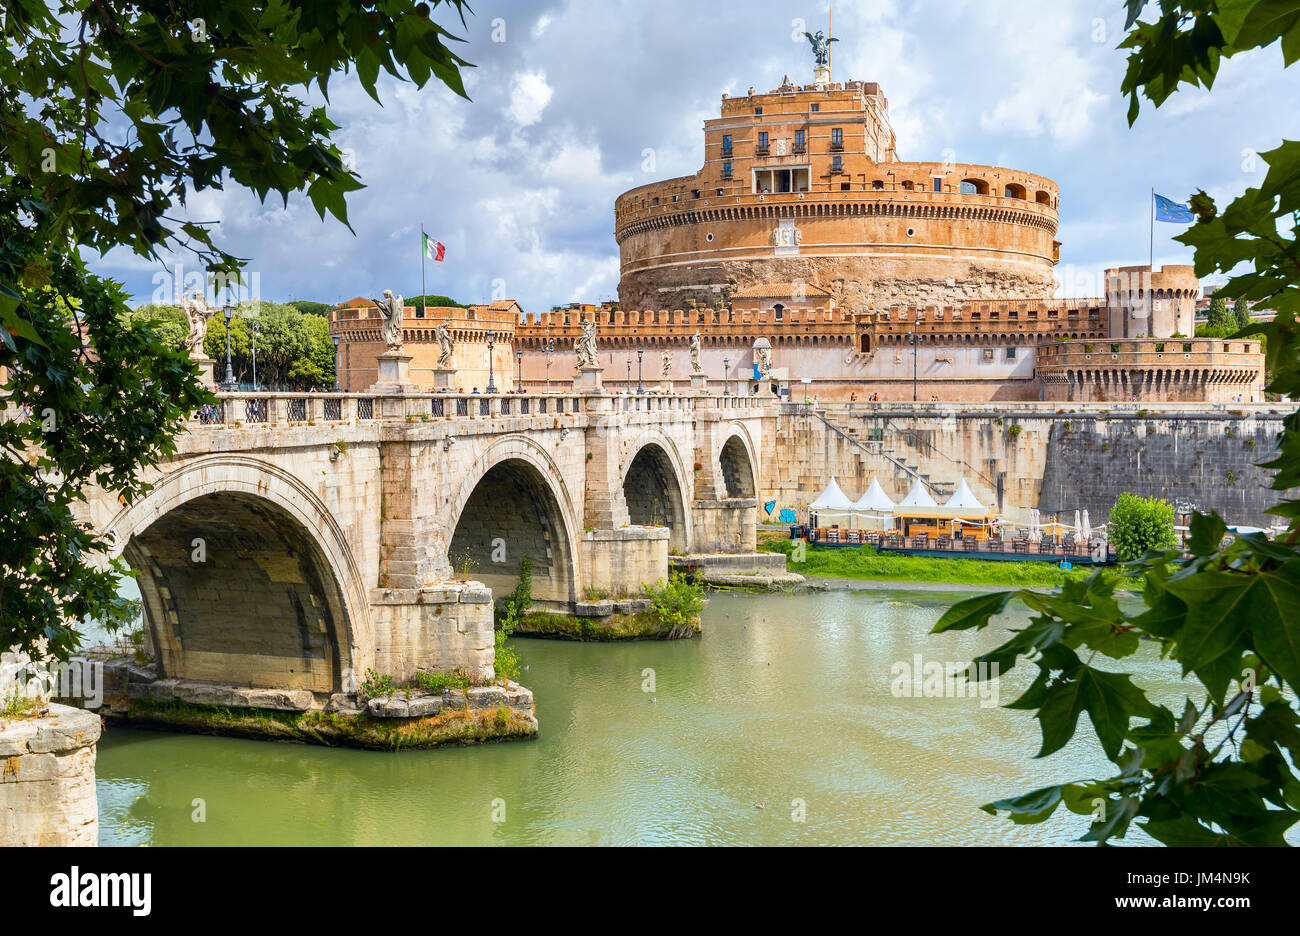 View of Sant Angelo fortress and bridge over Tiber river in Rome. Italy - Stock Image